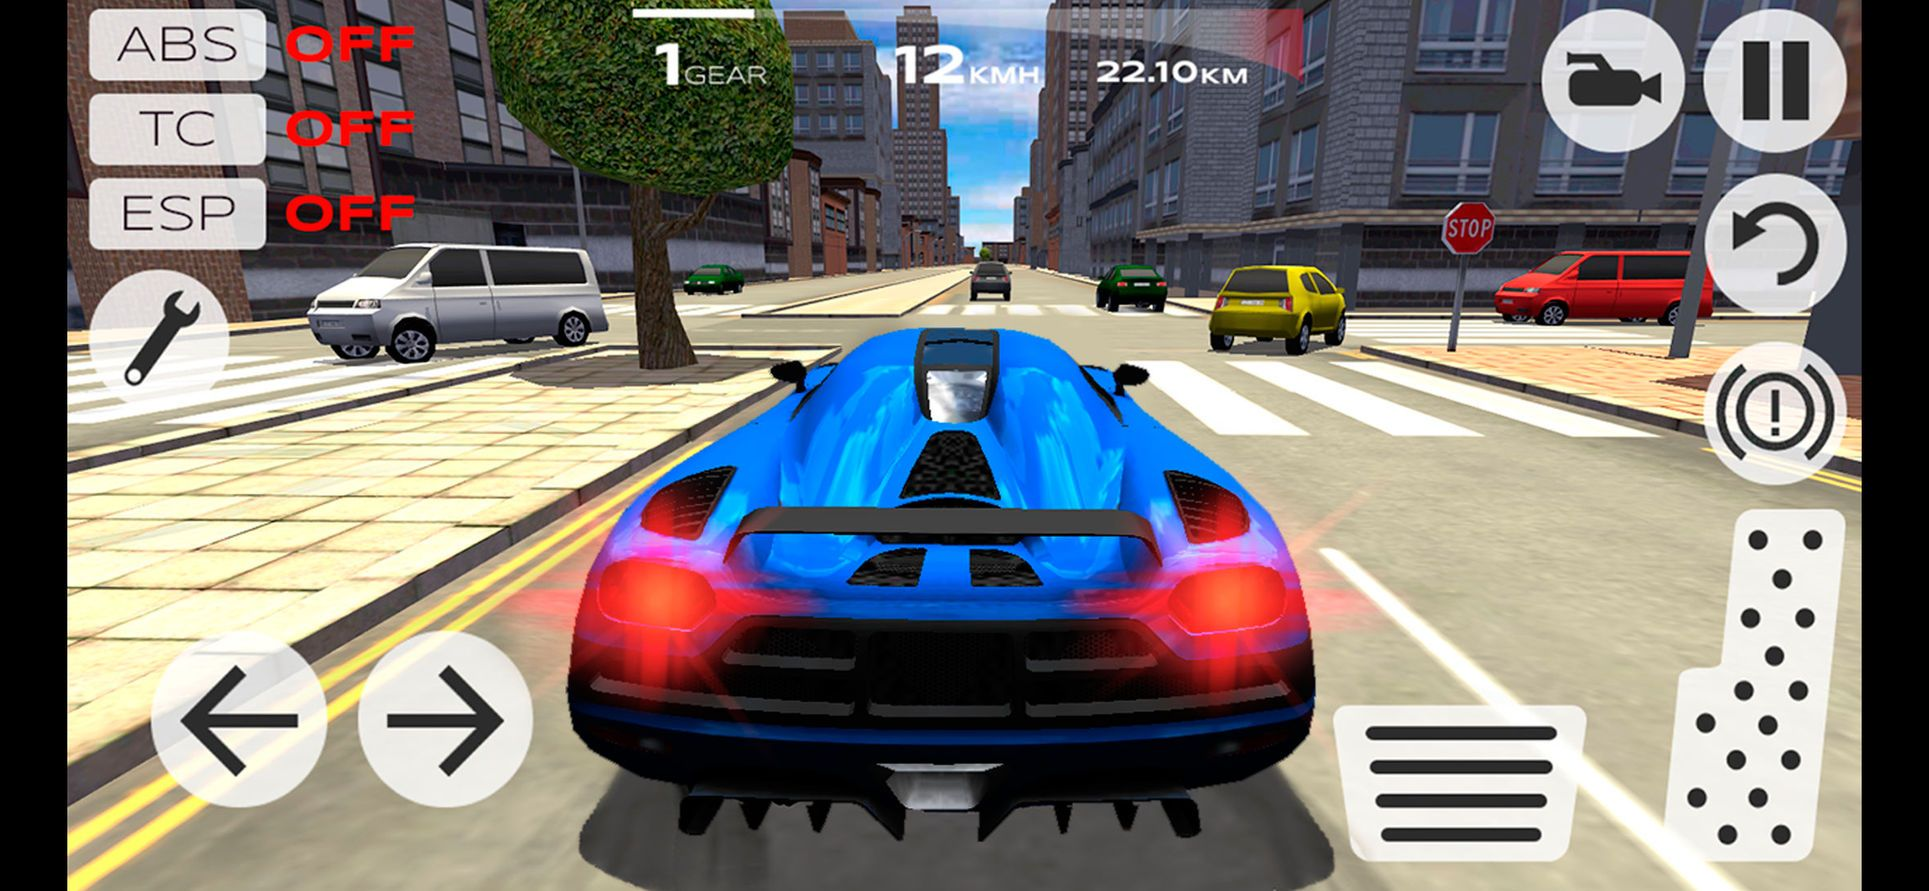 Extreme Car Driving Simulator Sports Games Racing Ios Car Games Car Driving Games